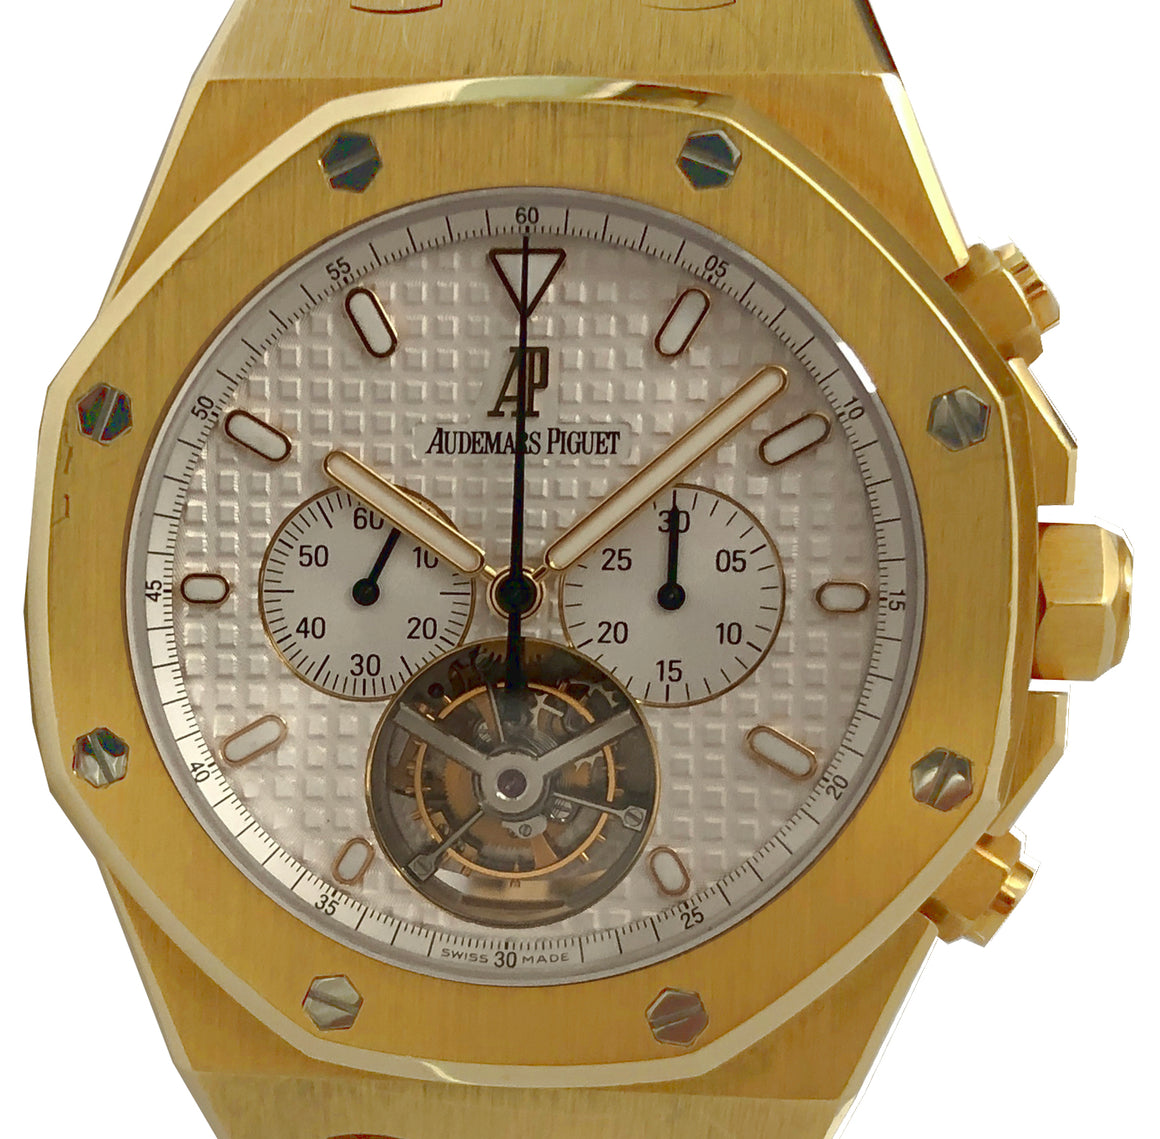 Audemars Piguet Royal Oak Tourbillon Chronograph 18k Yellow Gold